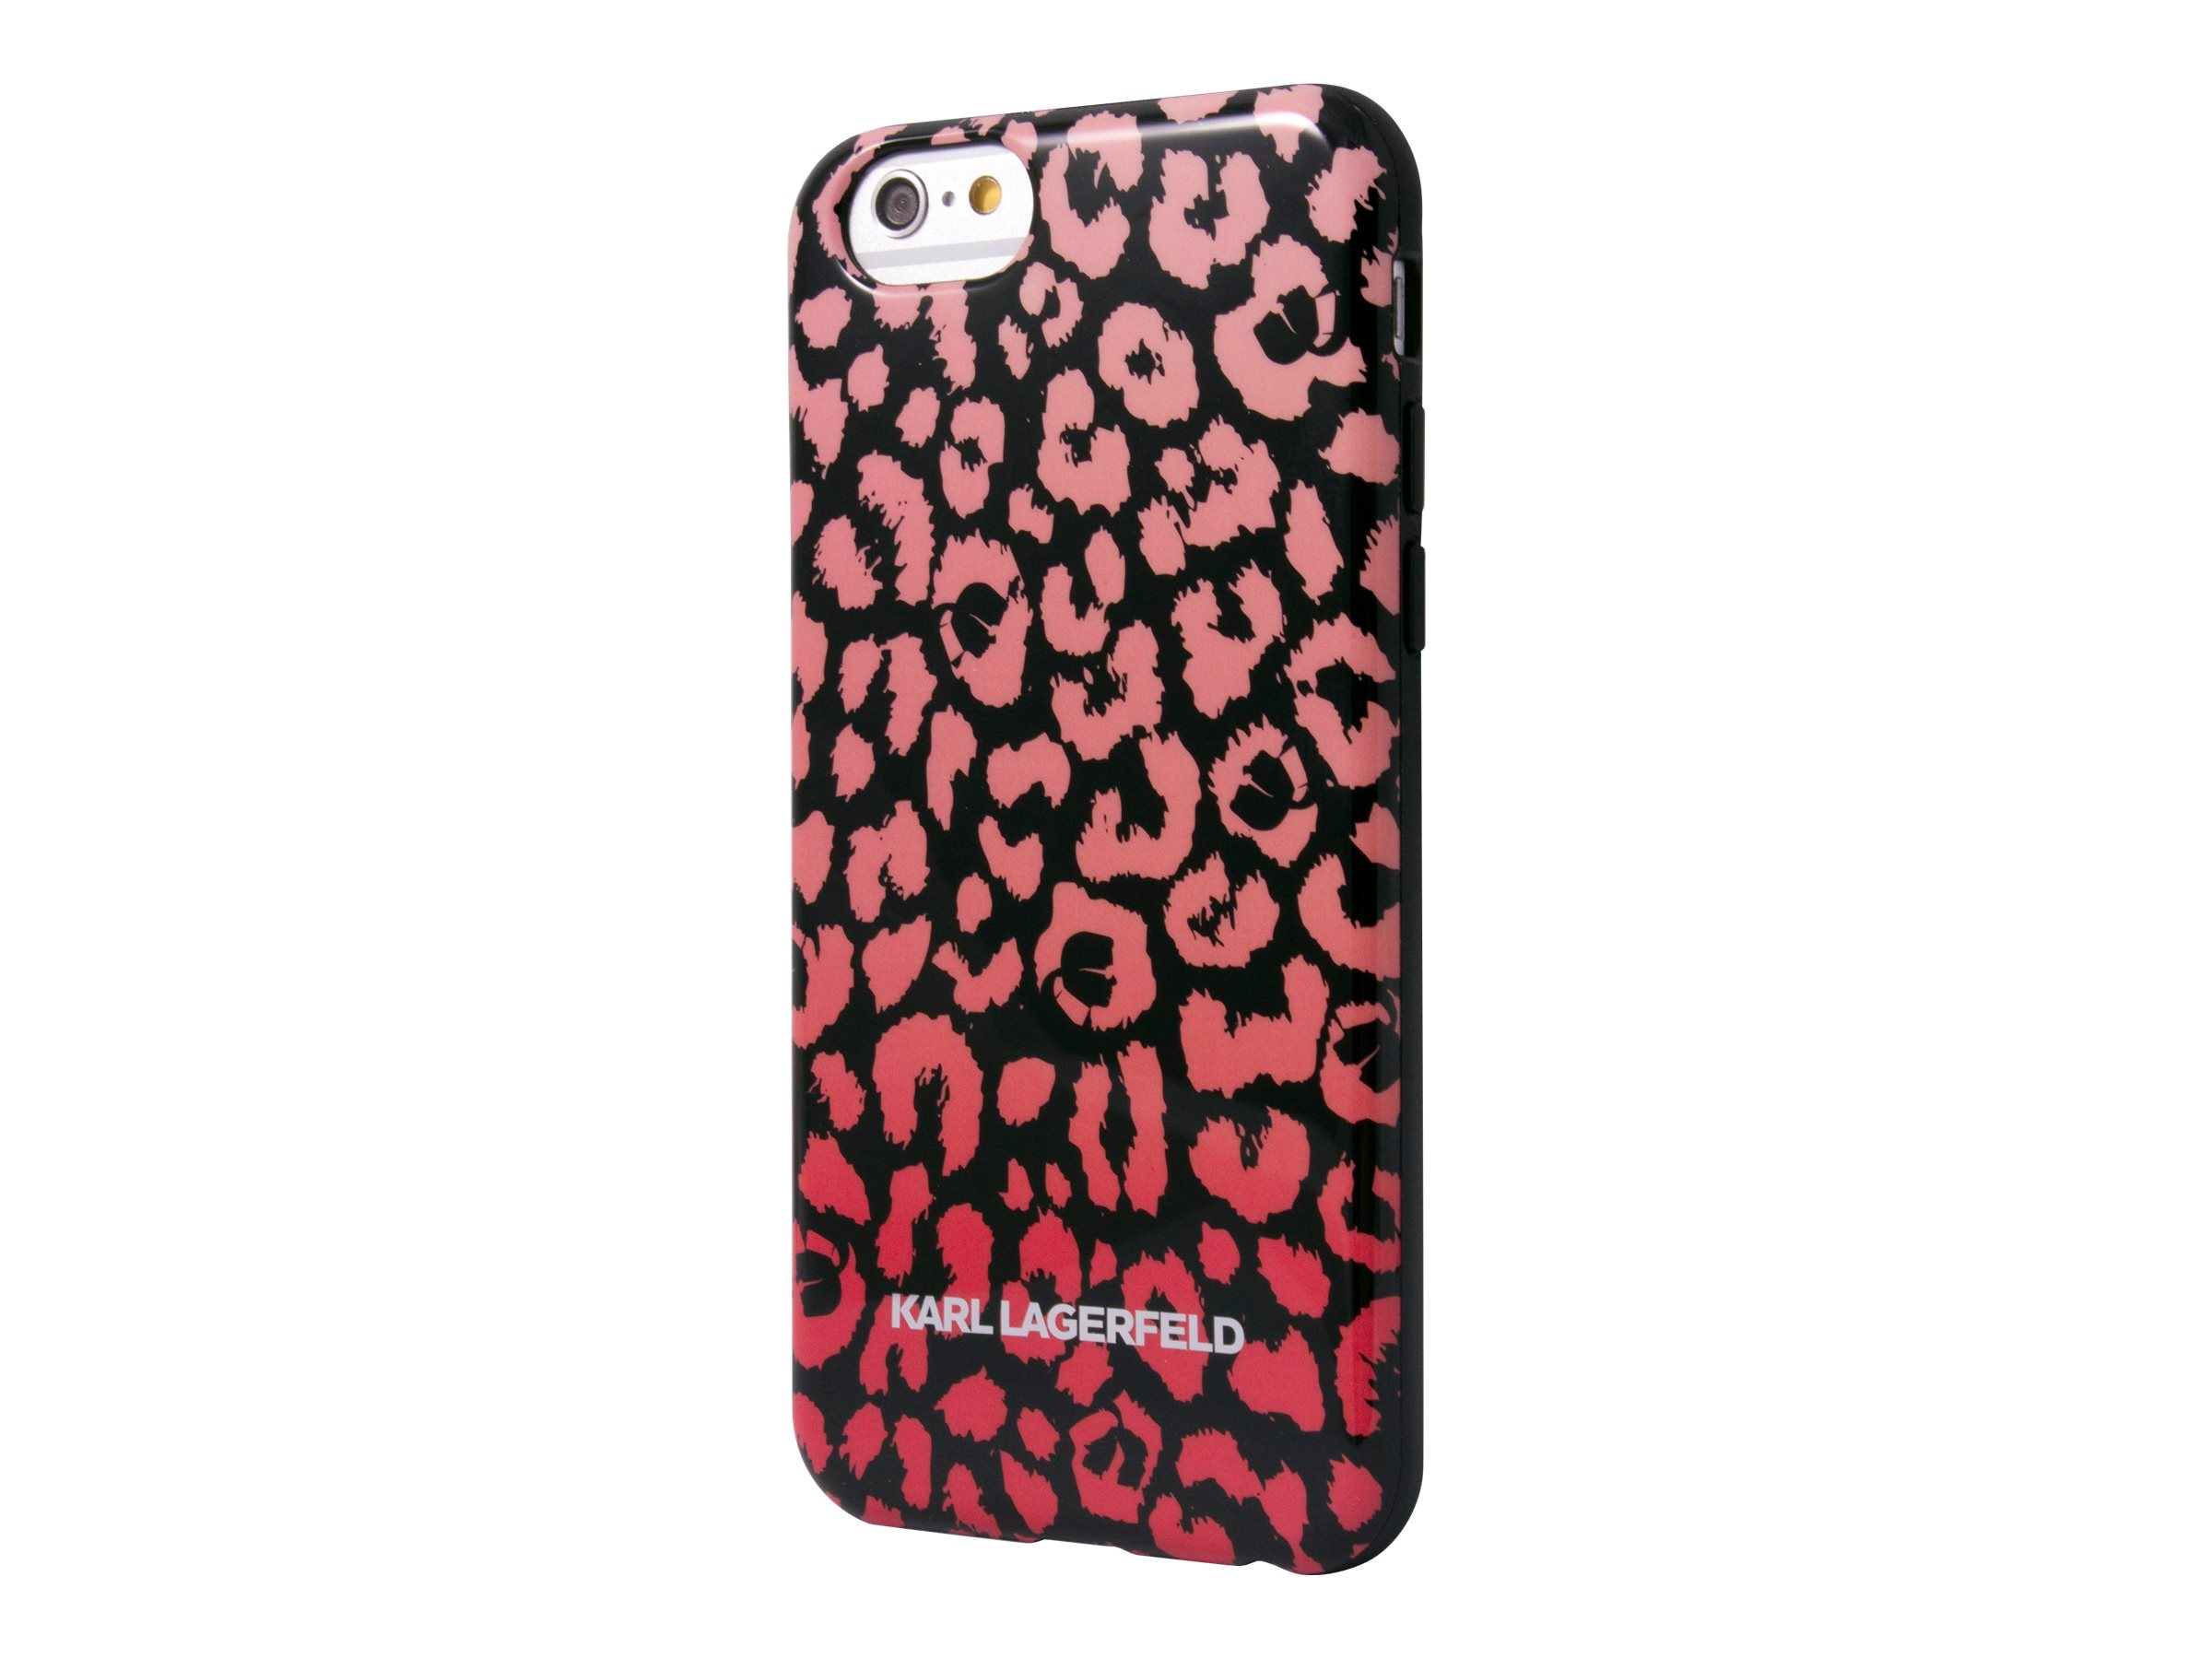 KARL LAGERFELD Coque - Coque de protection pour iPhone 5 - camouflage rose